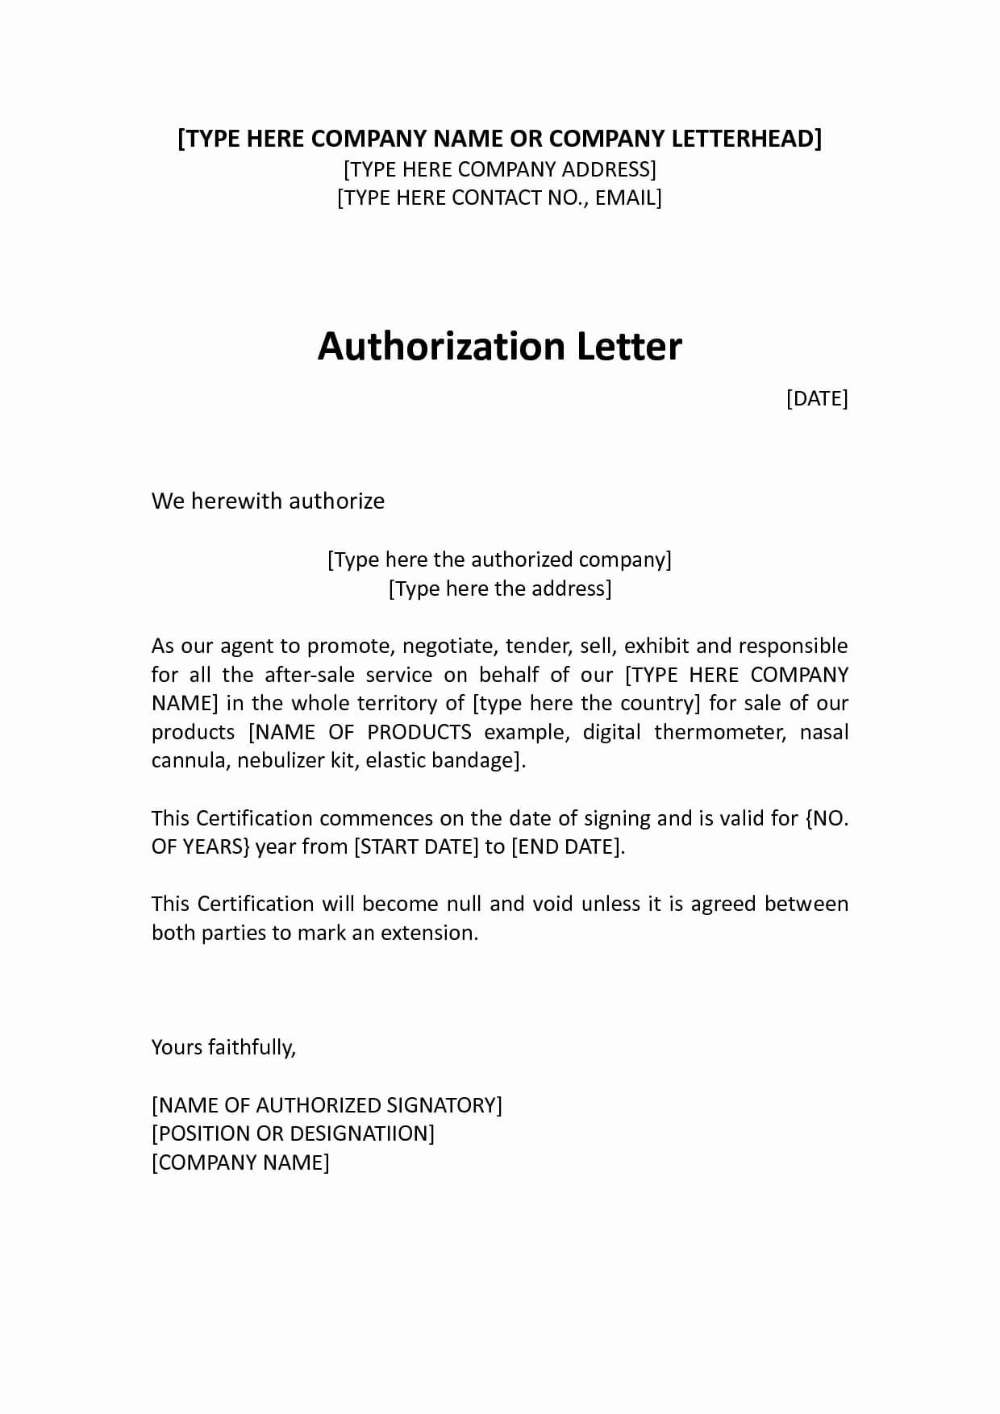 letter of authorization to represent examples pdf manager resume 2017 school coordinator sample icu nurse